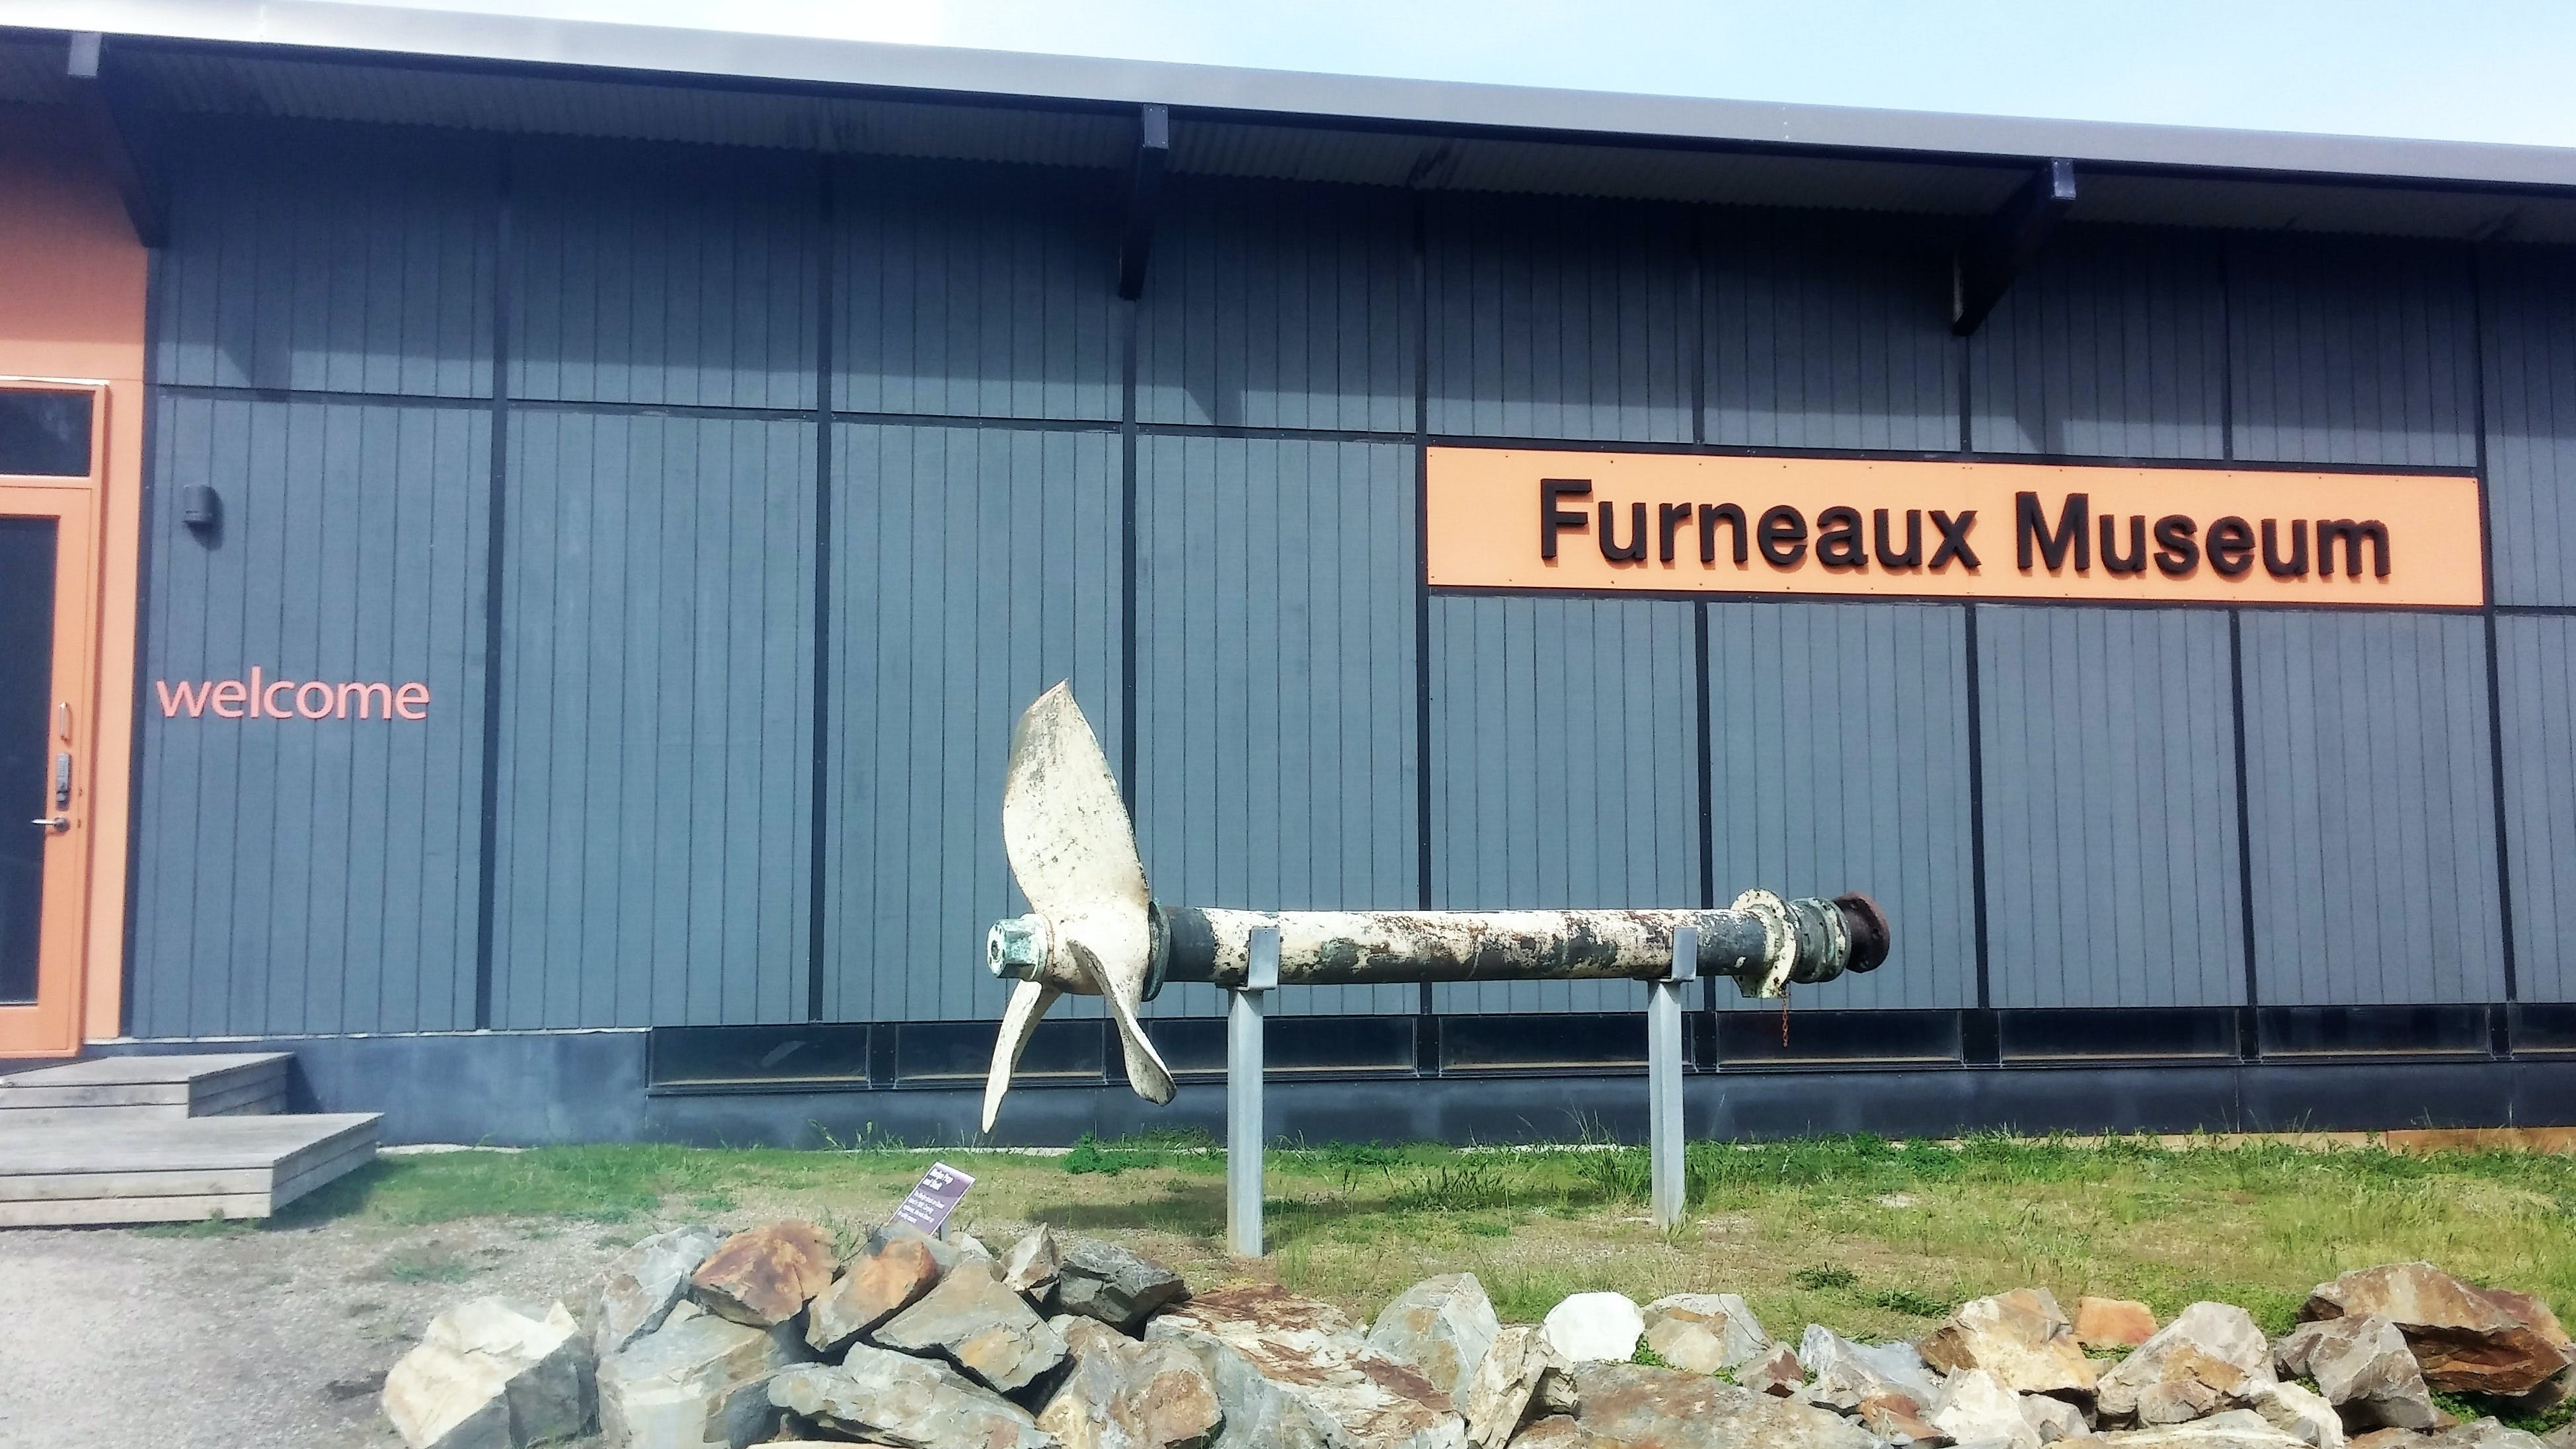 Furneaux Museum - Accommodation Tasmania